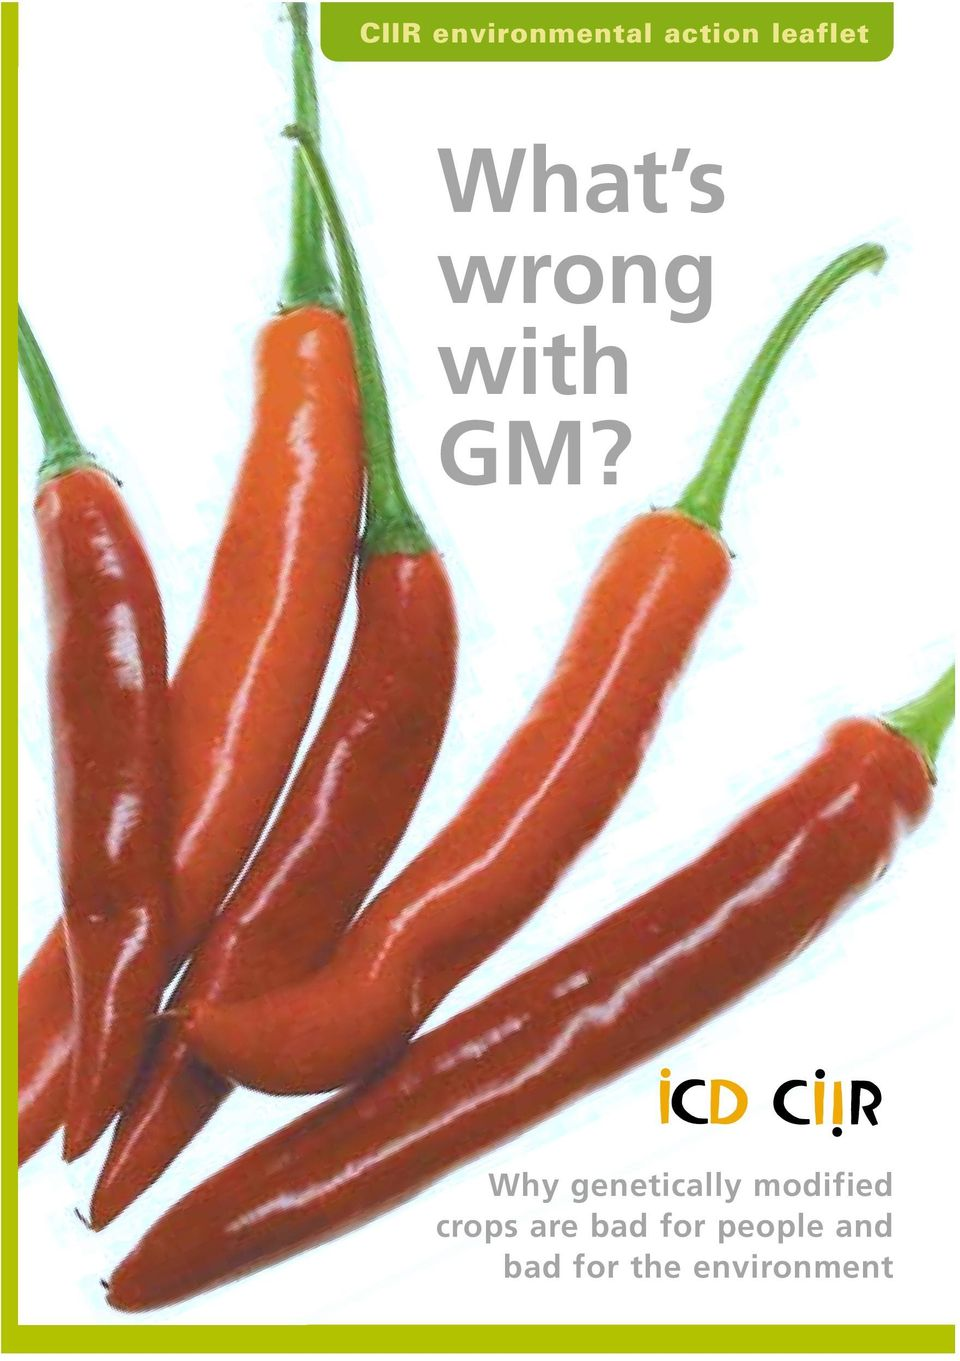 Why genetically modified crops